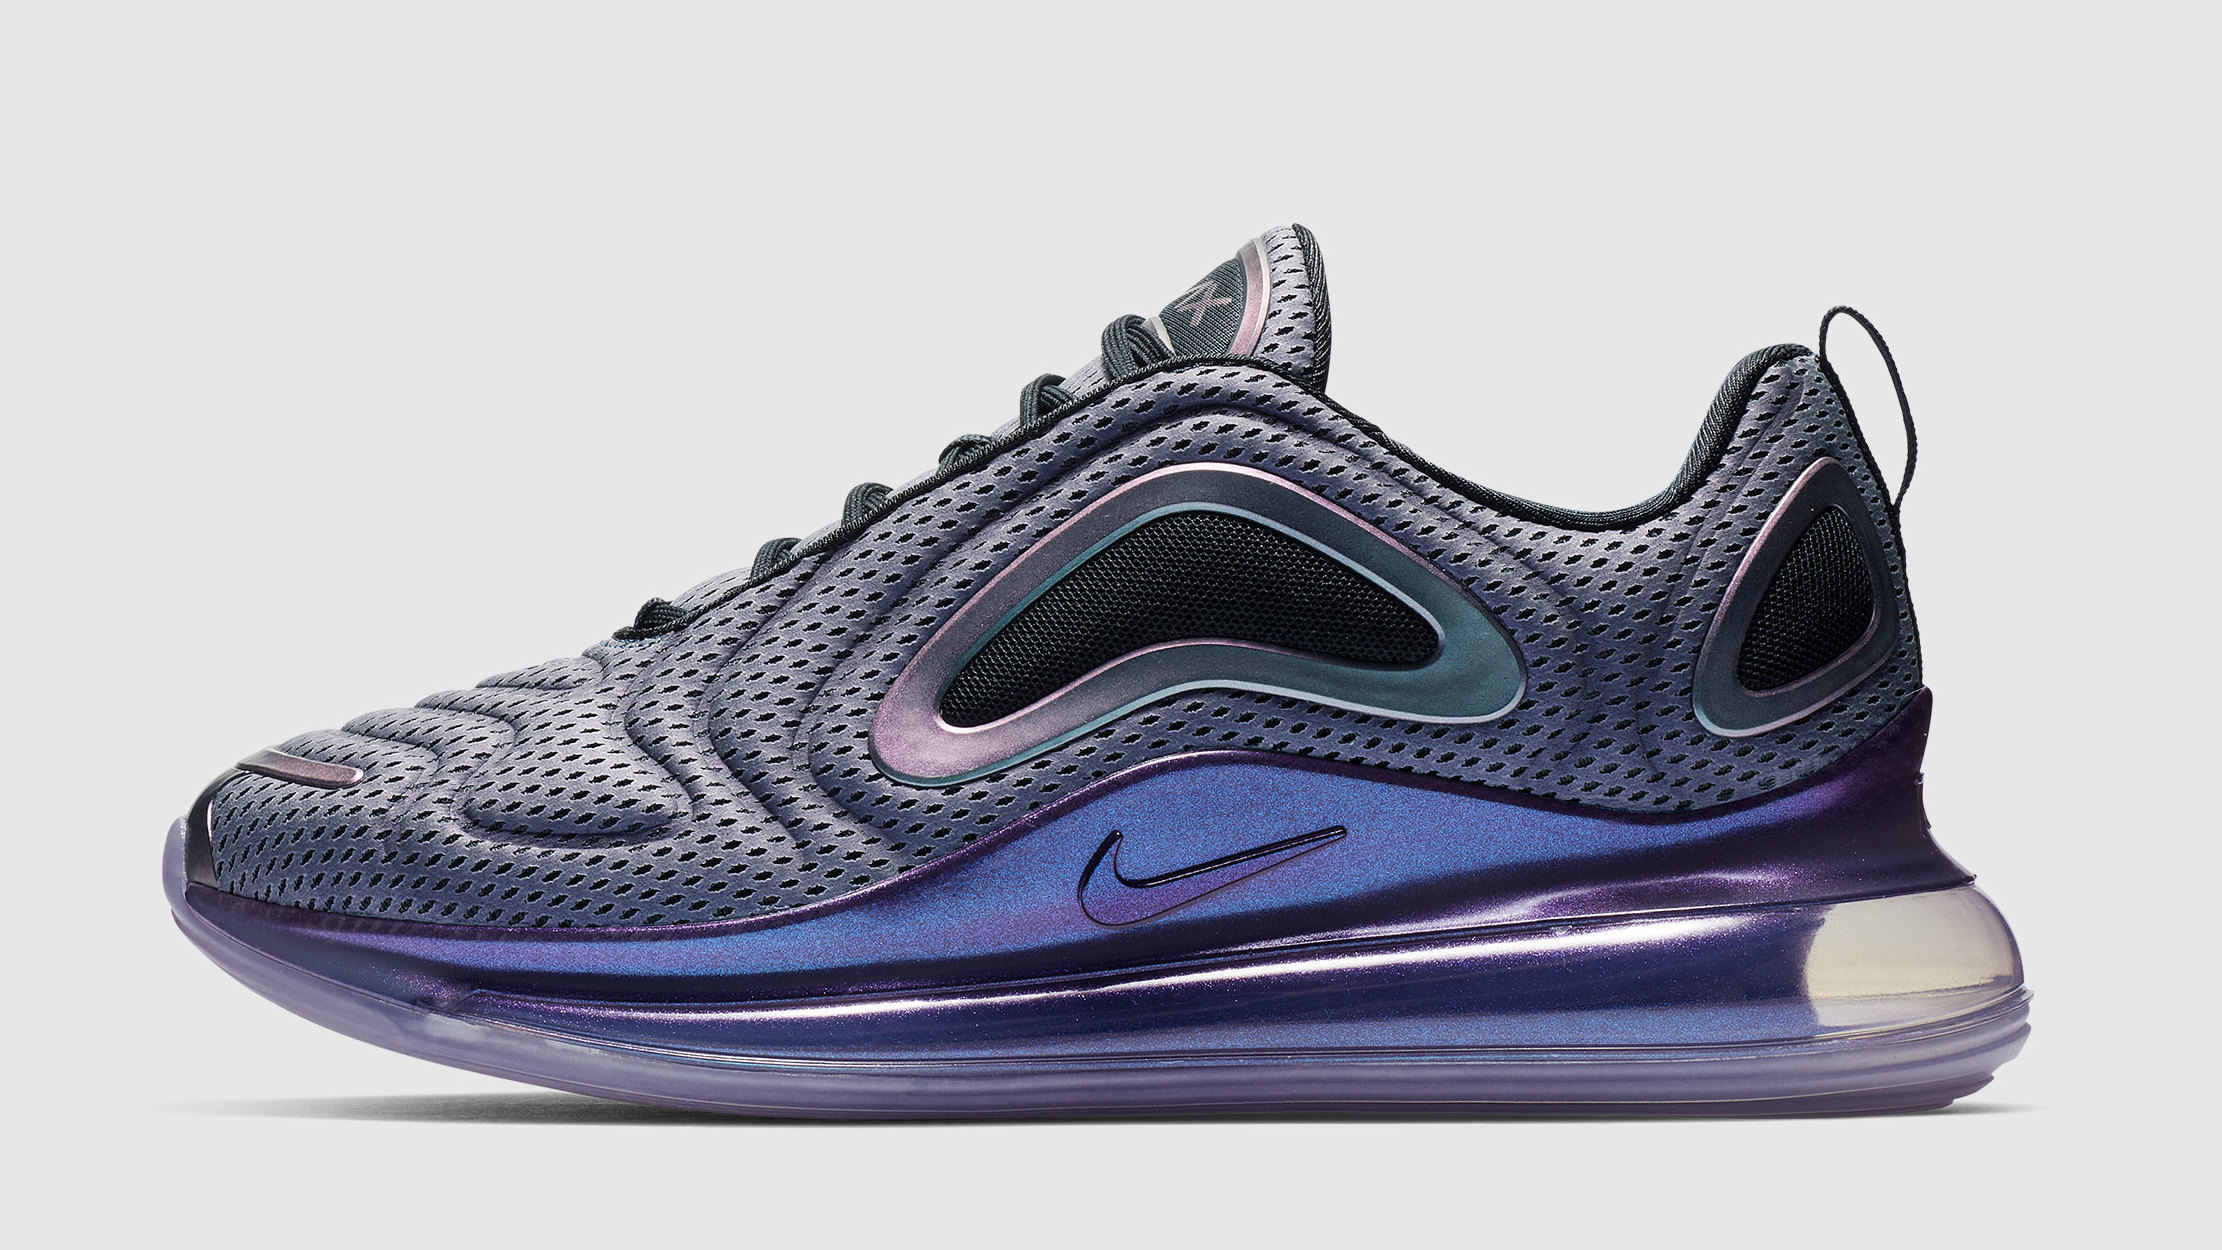 new arrivals 61015 23dba Nike Air Max 720 Launch Colorways Release Date   Sole Collector